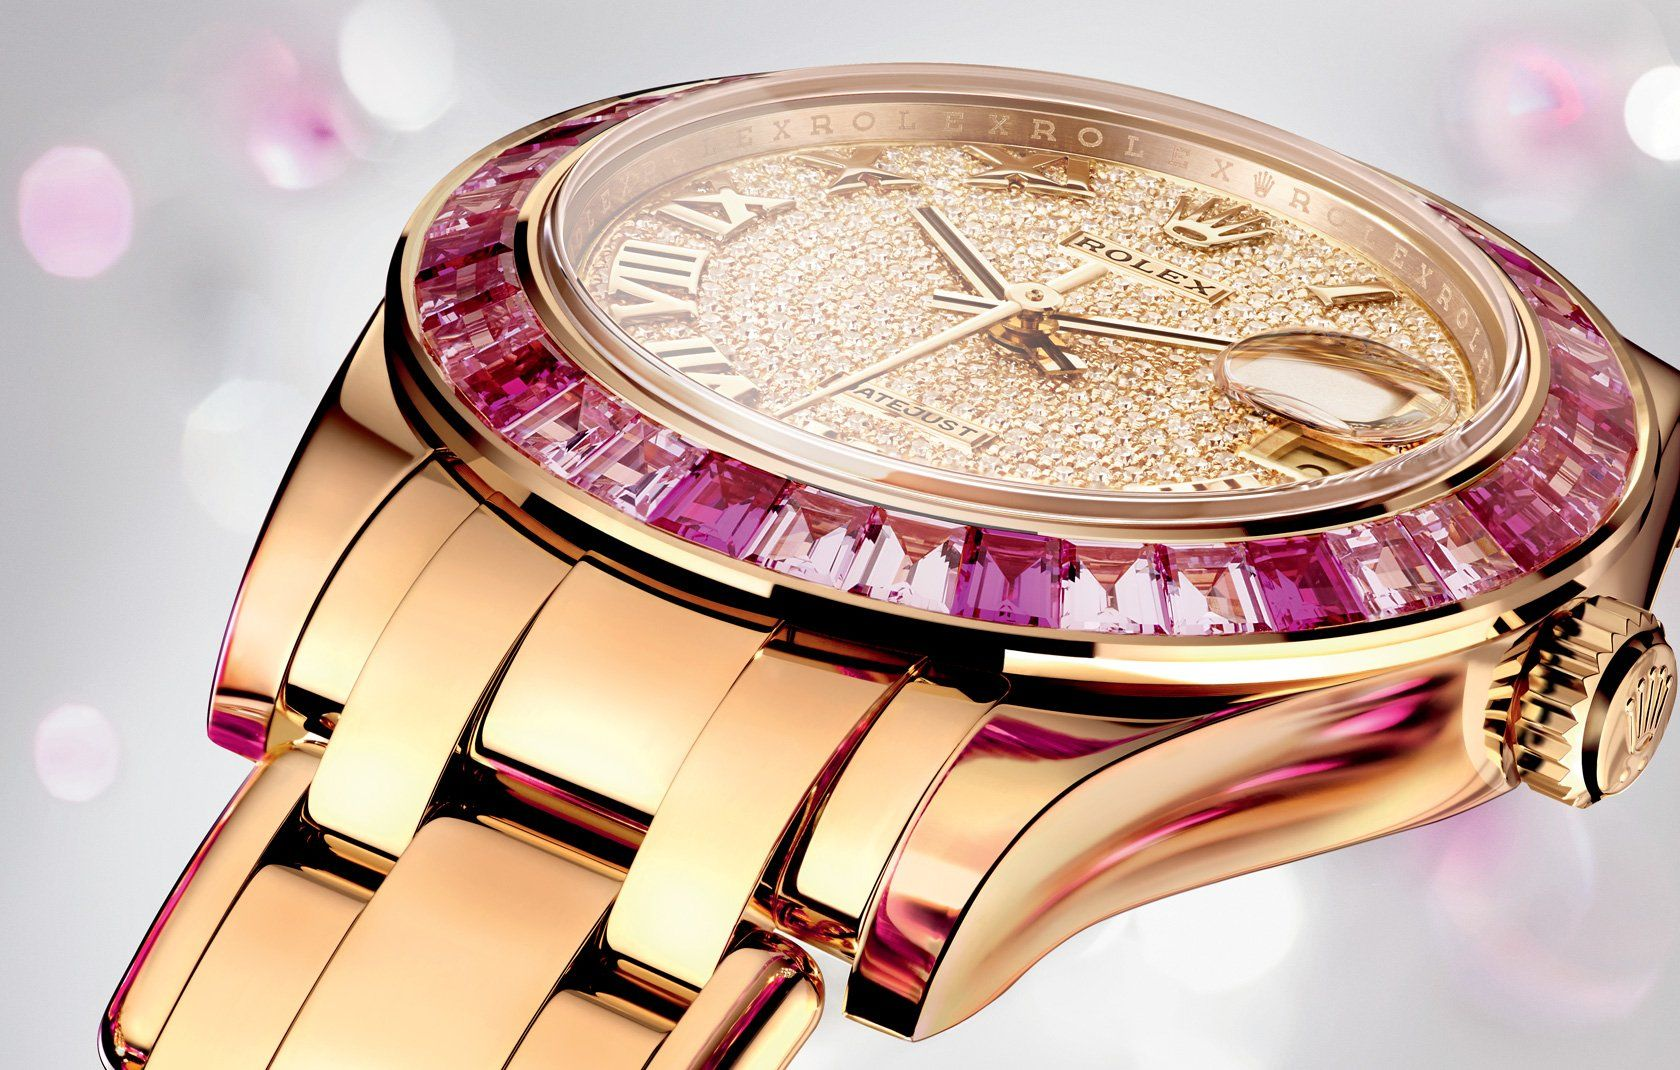 Le Pearly Jazz... My New Rolex Datejust Pearlmaster 34 Watch: Baselworld 2014